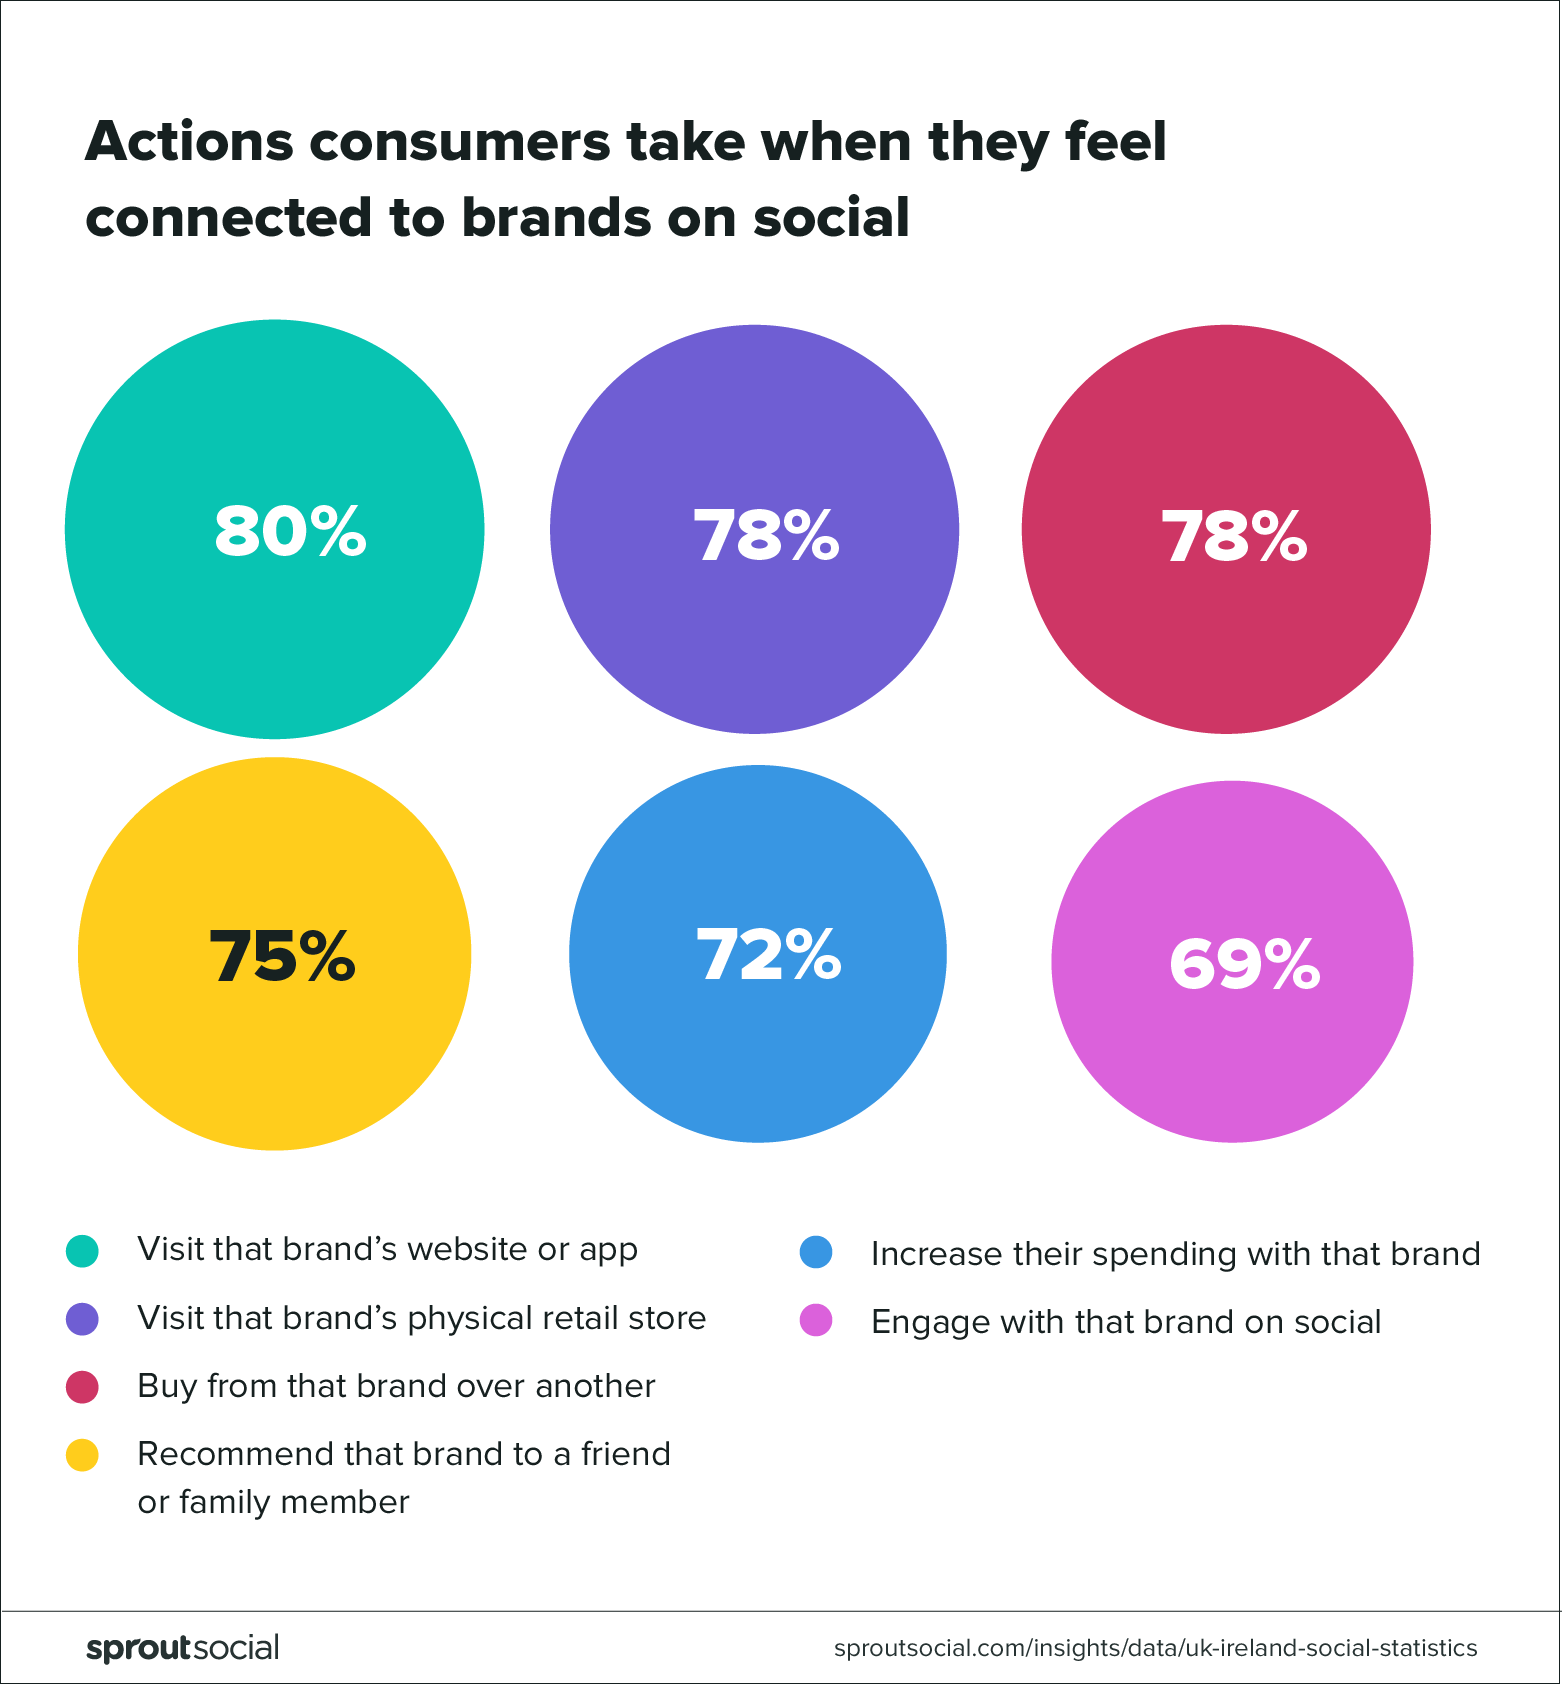 Actions consumers take when they feel connected to brands on social